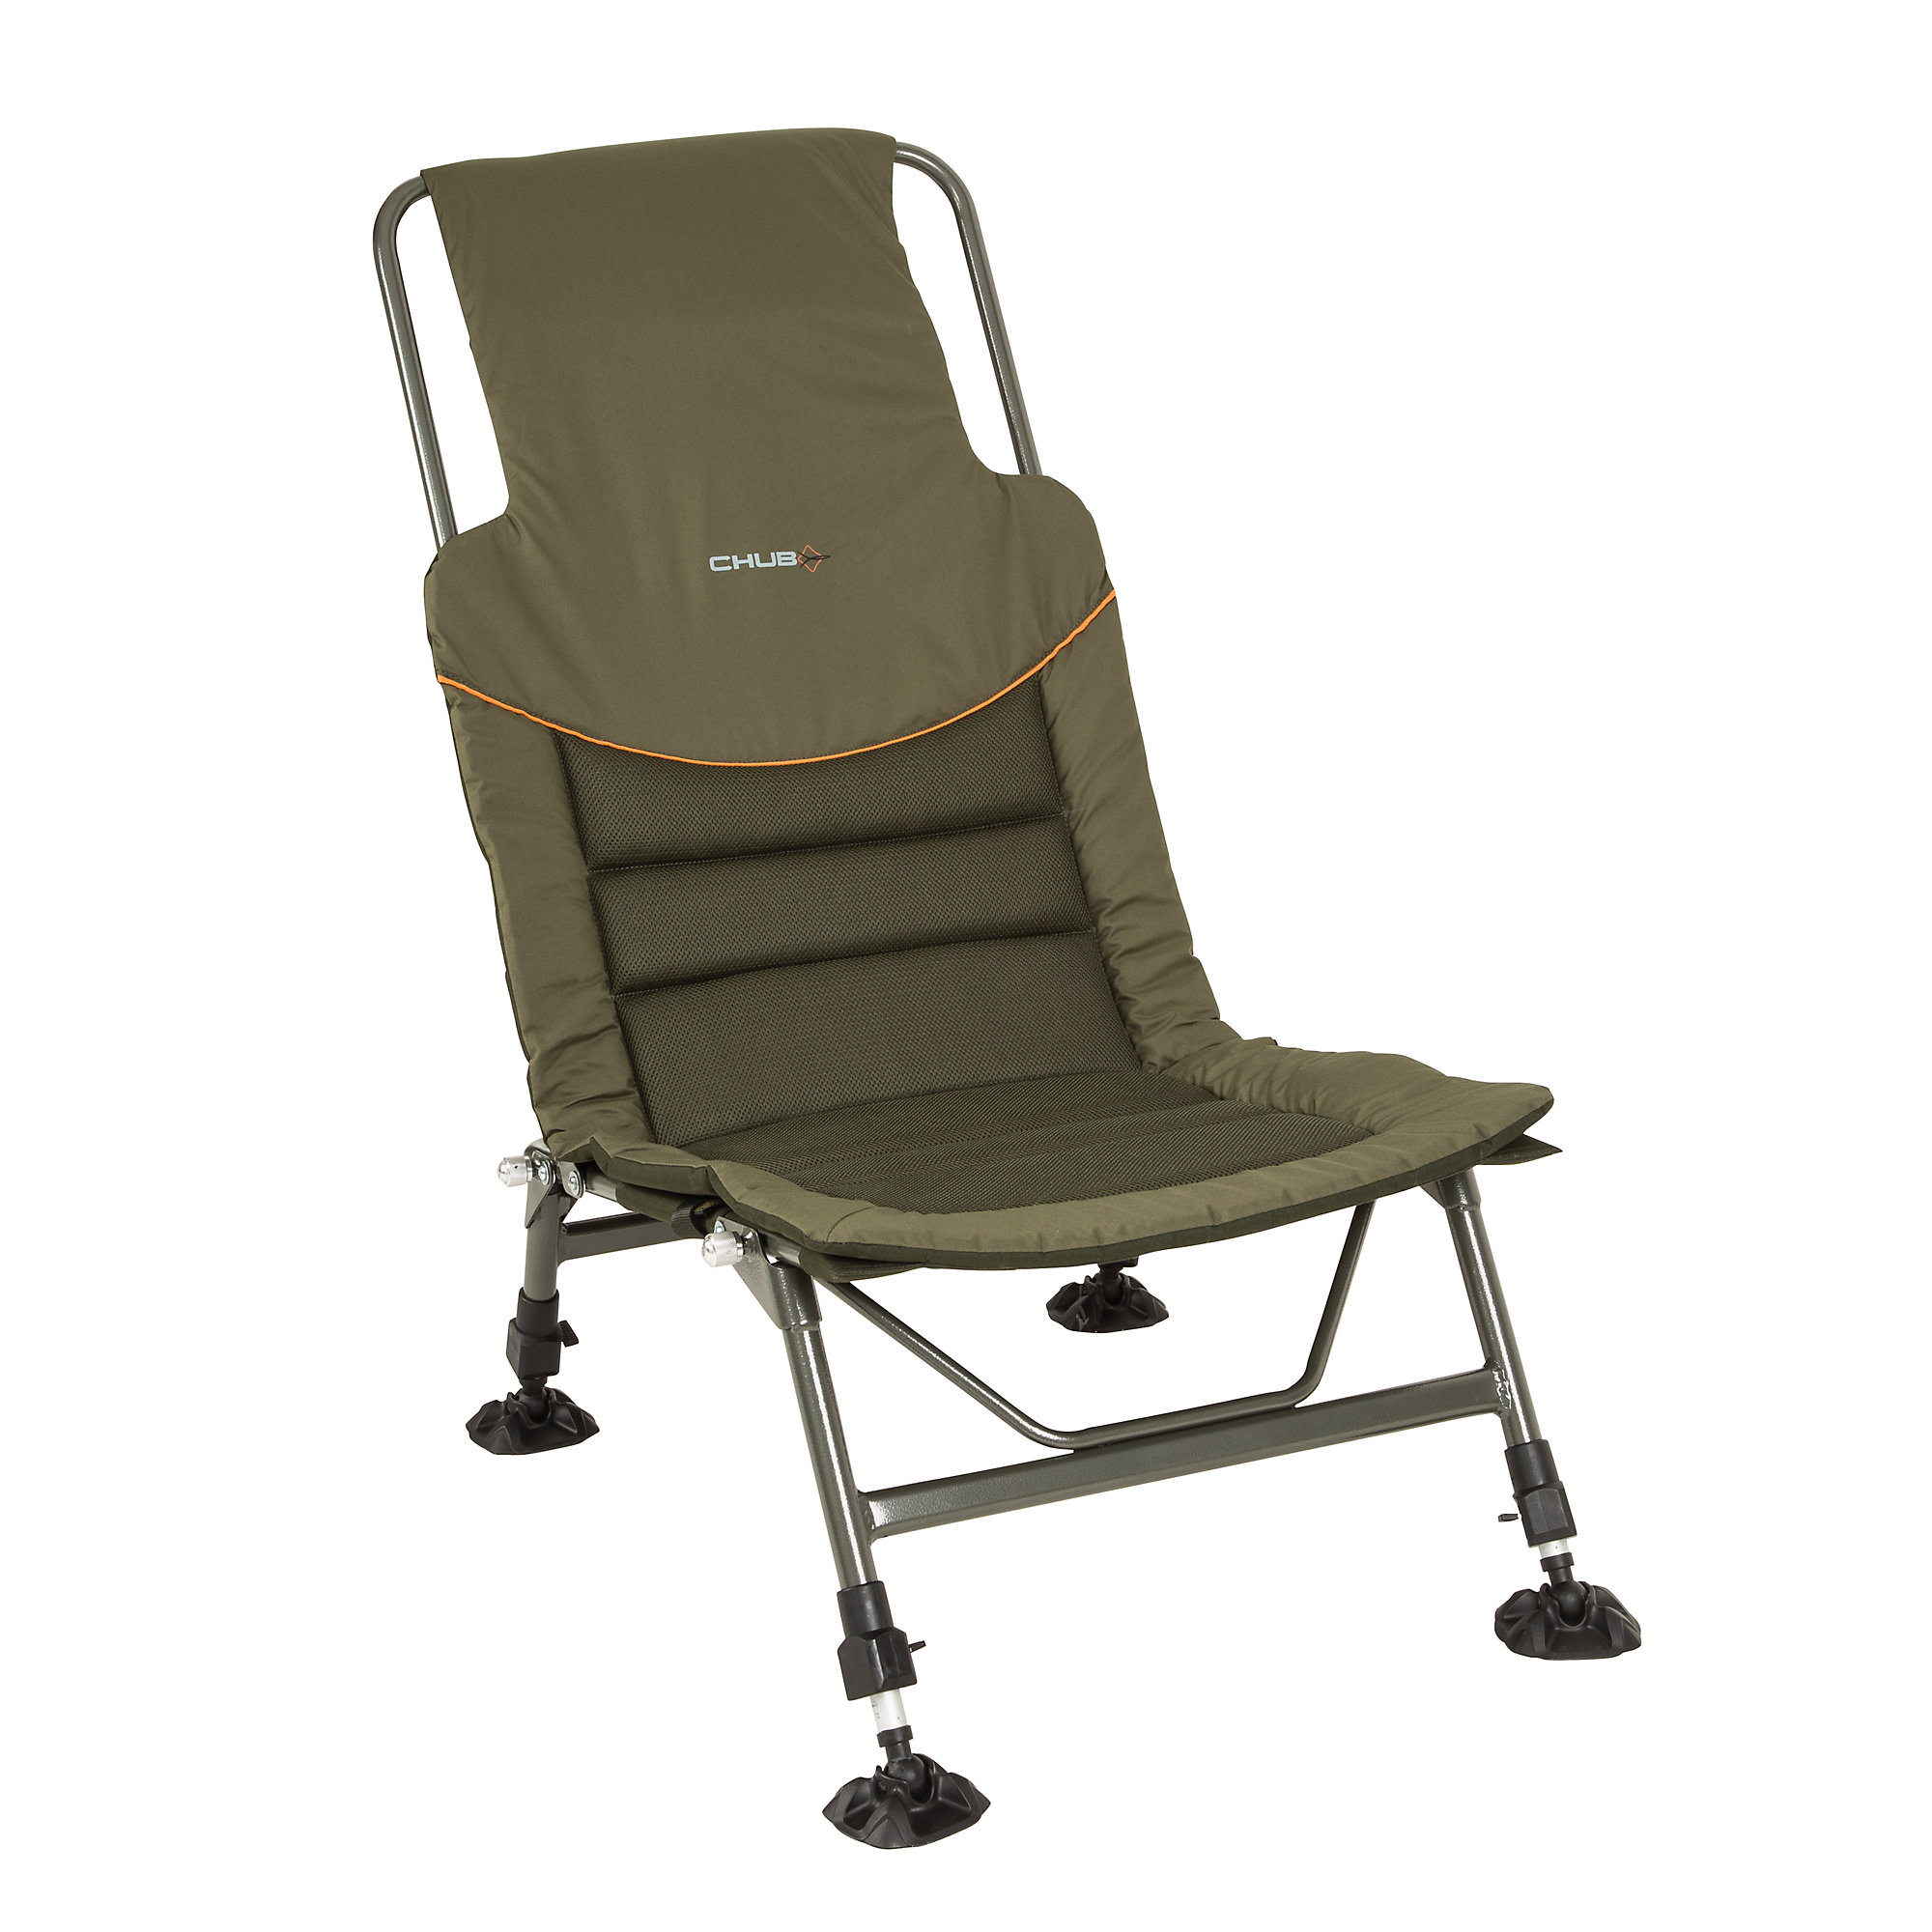 angling chair accessories chairs for room chub outkast ez back  glasgow centre